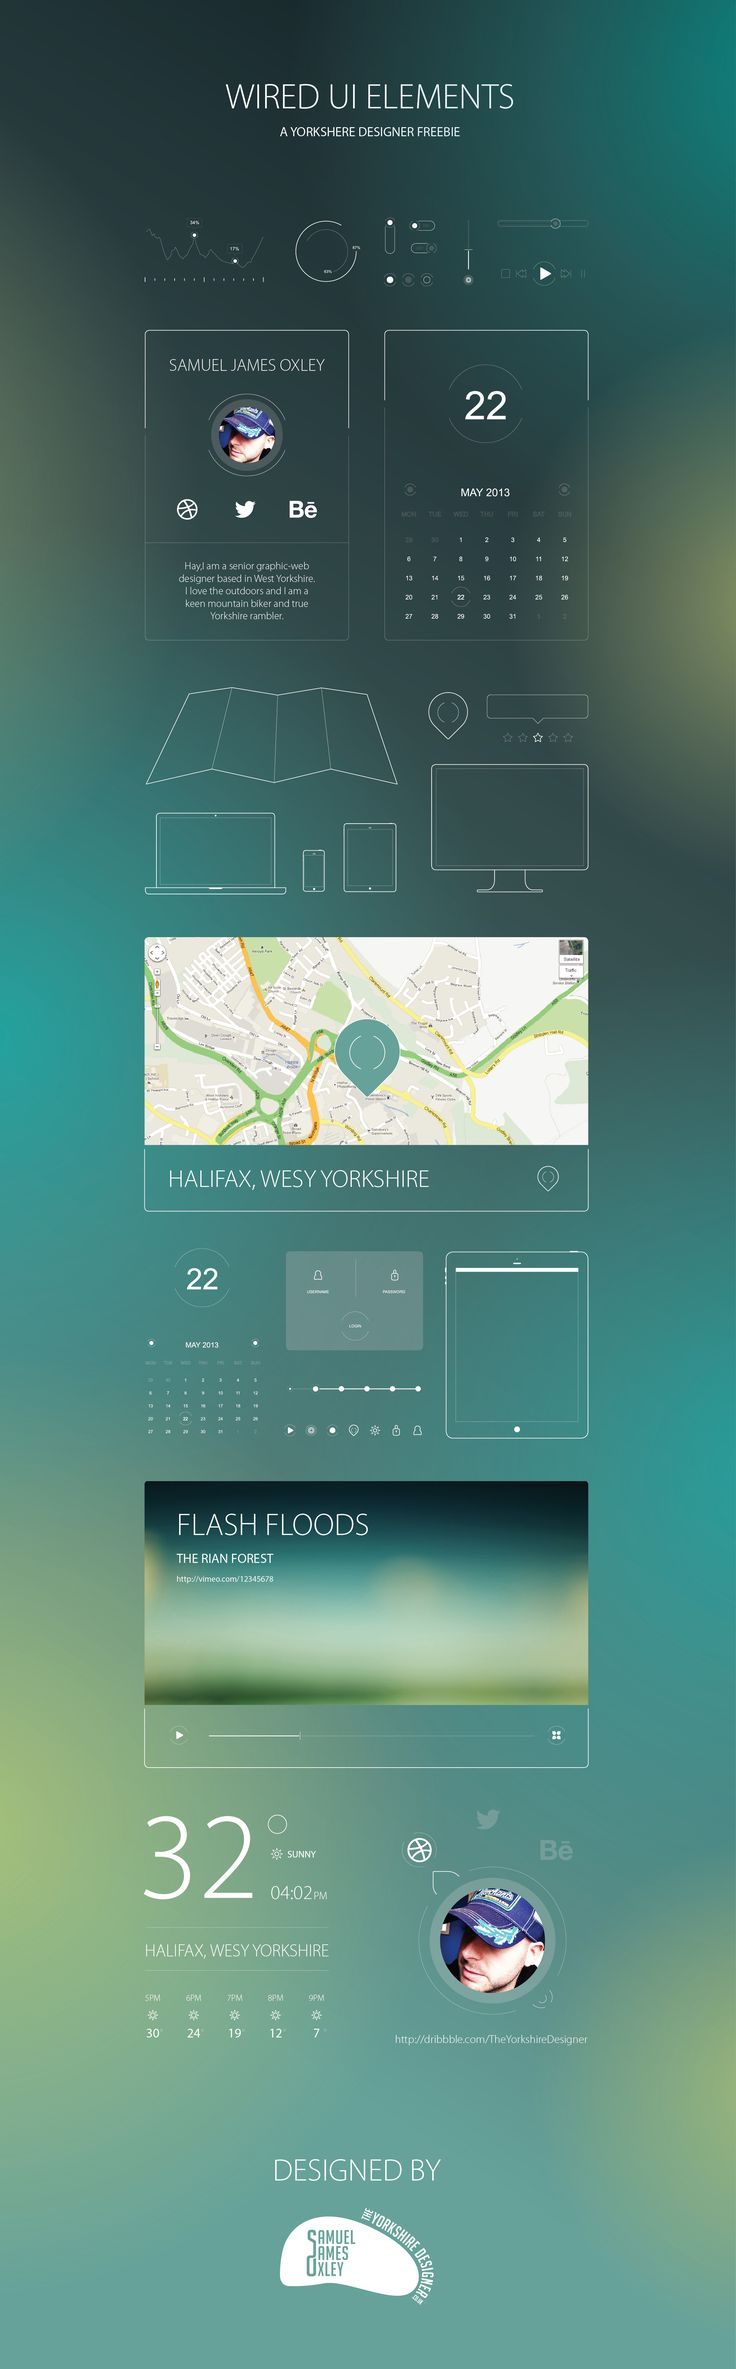 Dribbble - UI_Pack_-_TheYorkshireDesigner.jpg by Samuel James Oxley